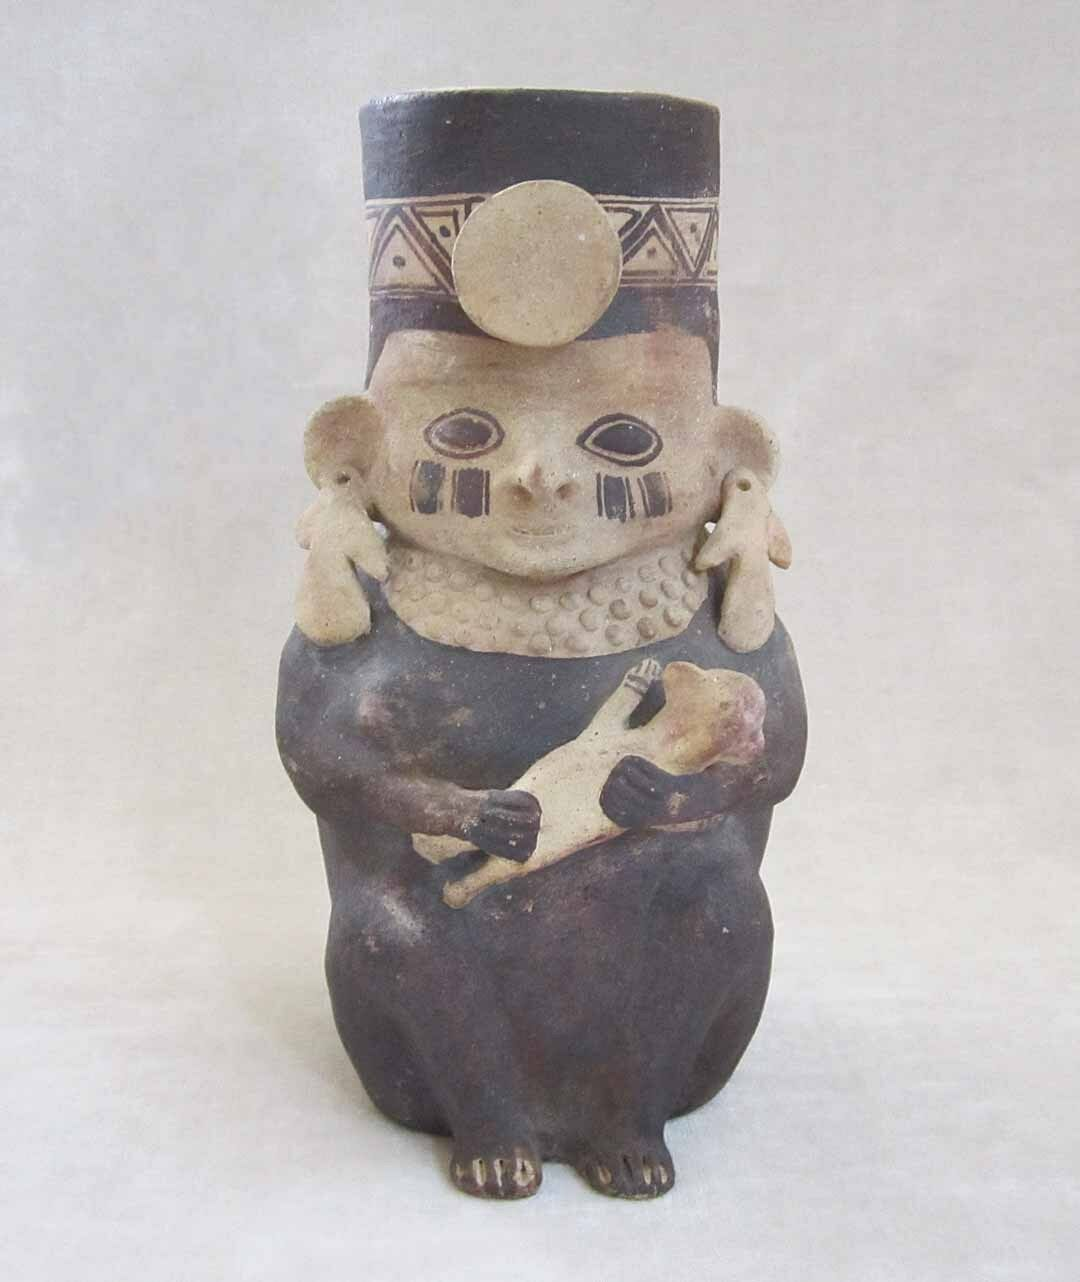 Pre-Columbian CHANCAY Pottery Vessel of a Priestess Holding an Infant - 1000 AD